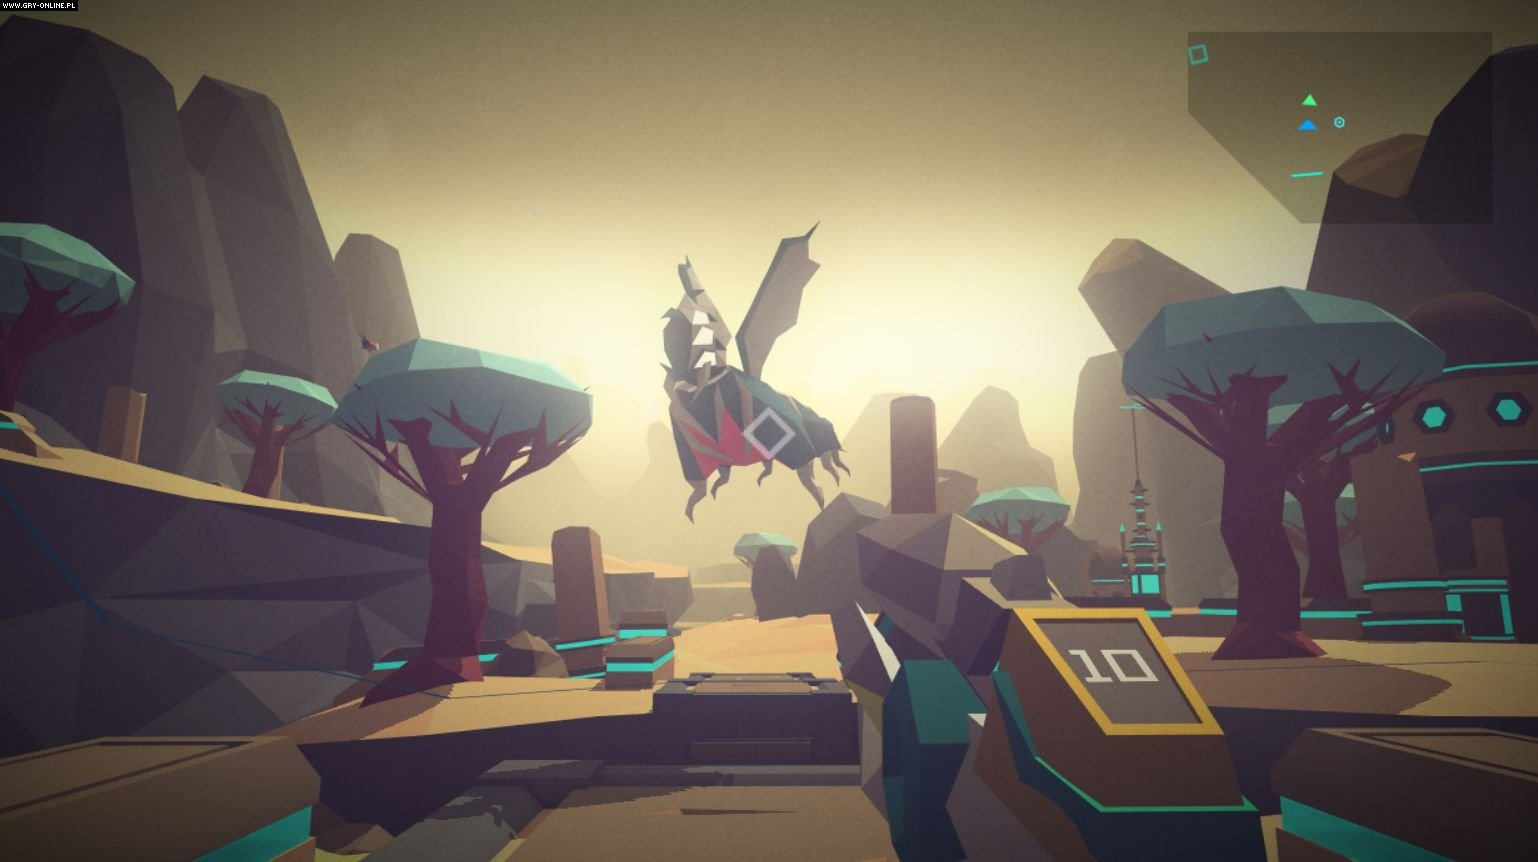 Morphite PC, PS4, XONE, Switch, iOS, AND Games Image 18/18, Crescent Moon Games